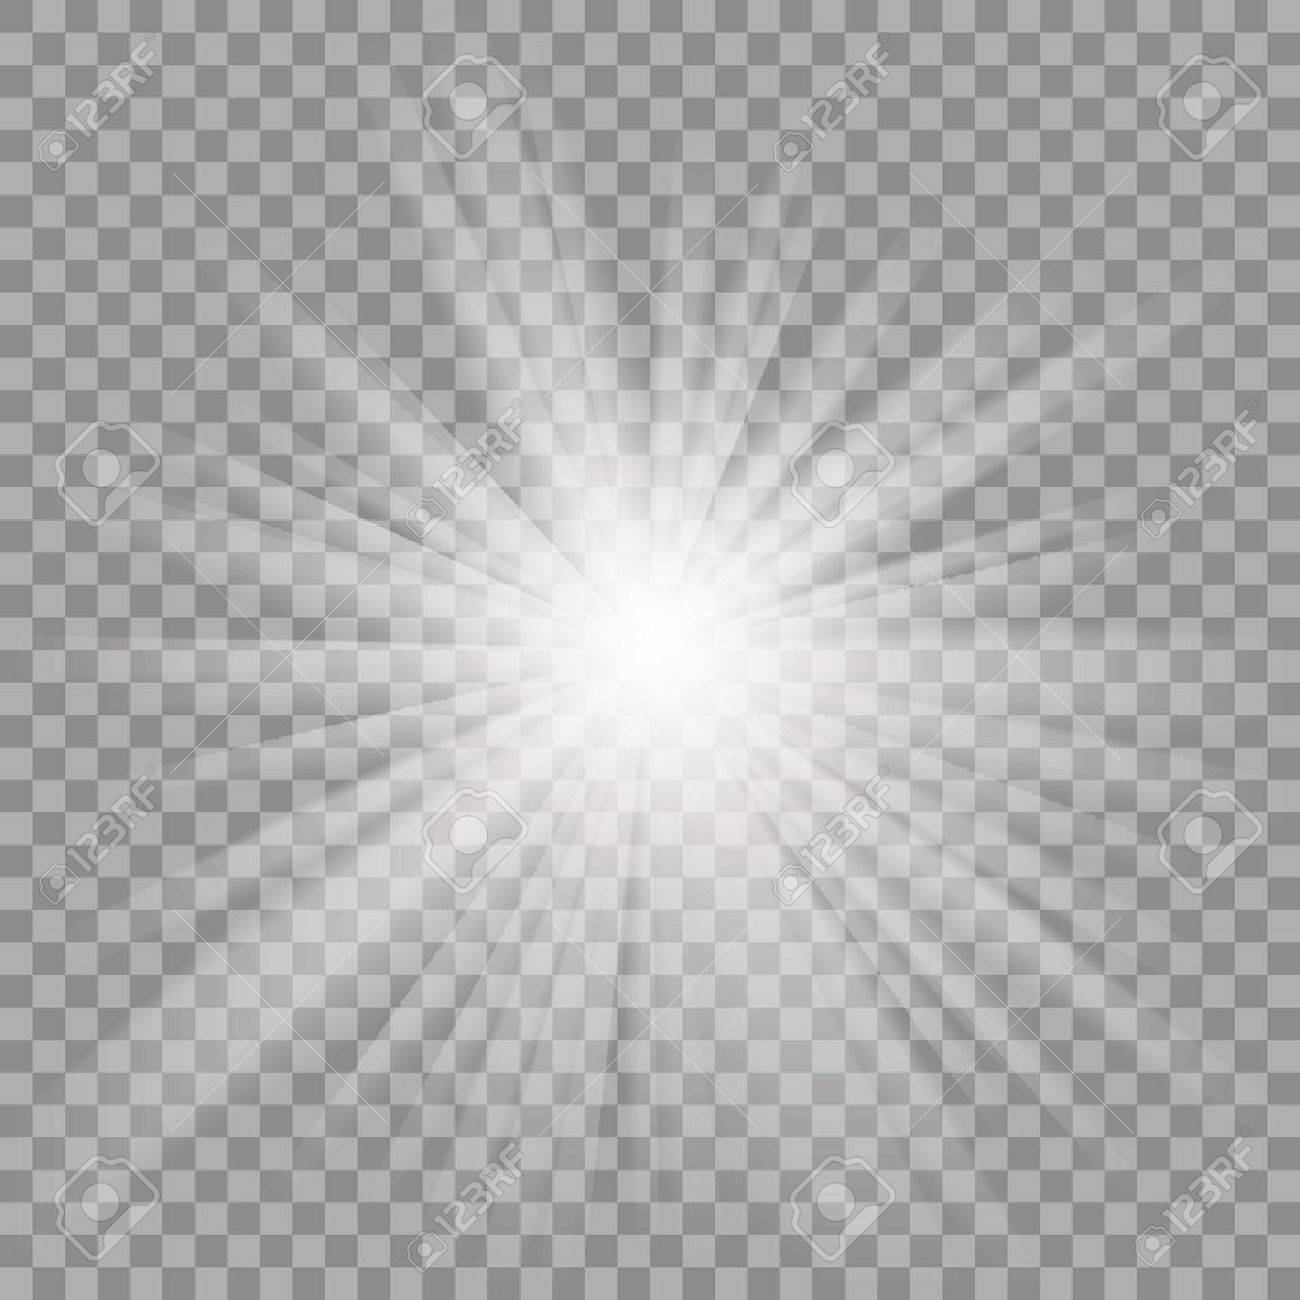 White glowing light burst explosion with transparent. - 53121695